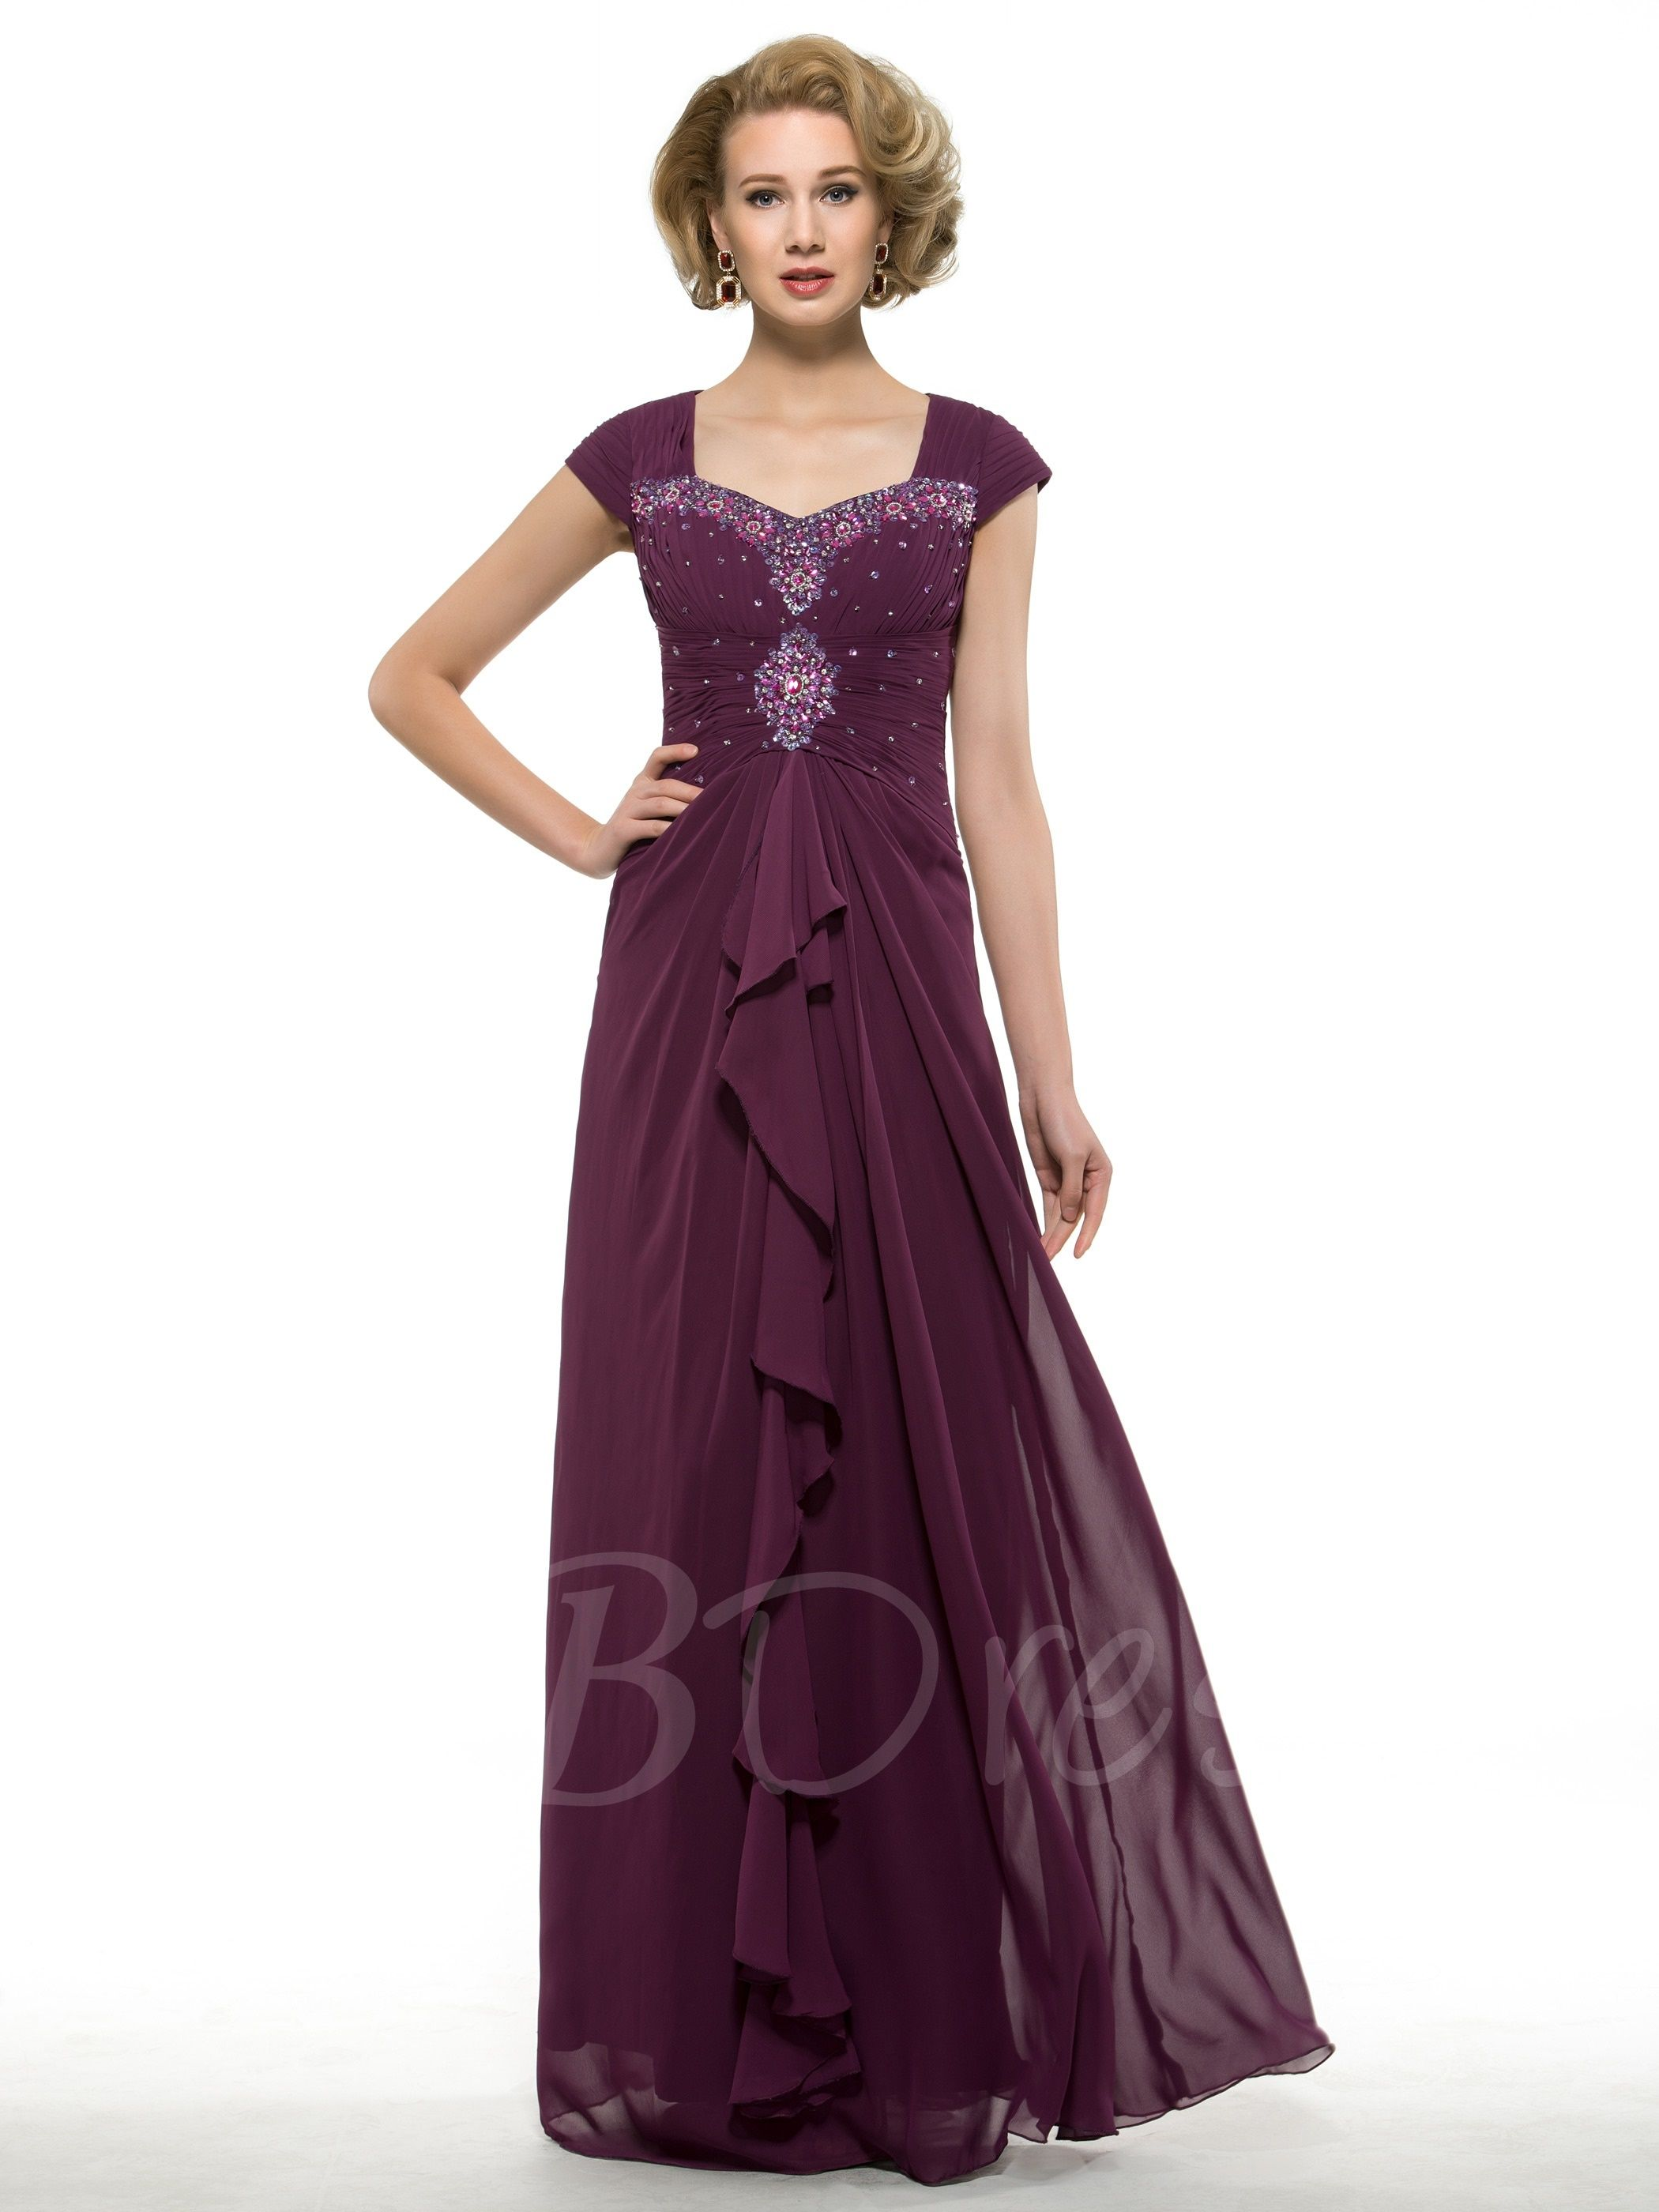 Ruched Beading Sheath Mother of the Bride Dress Mother